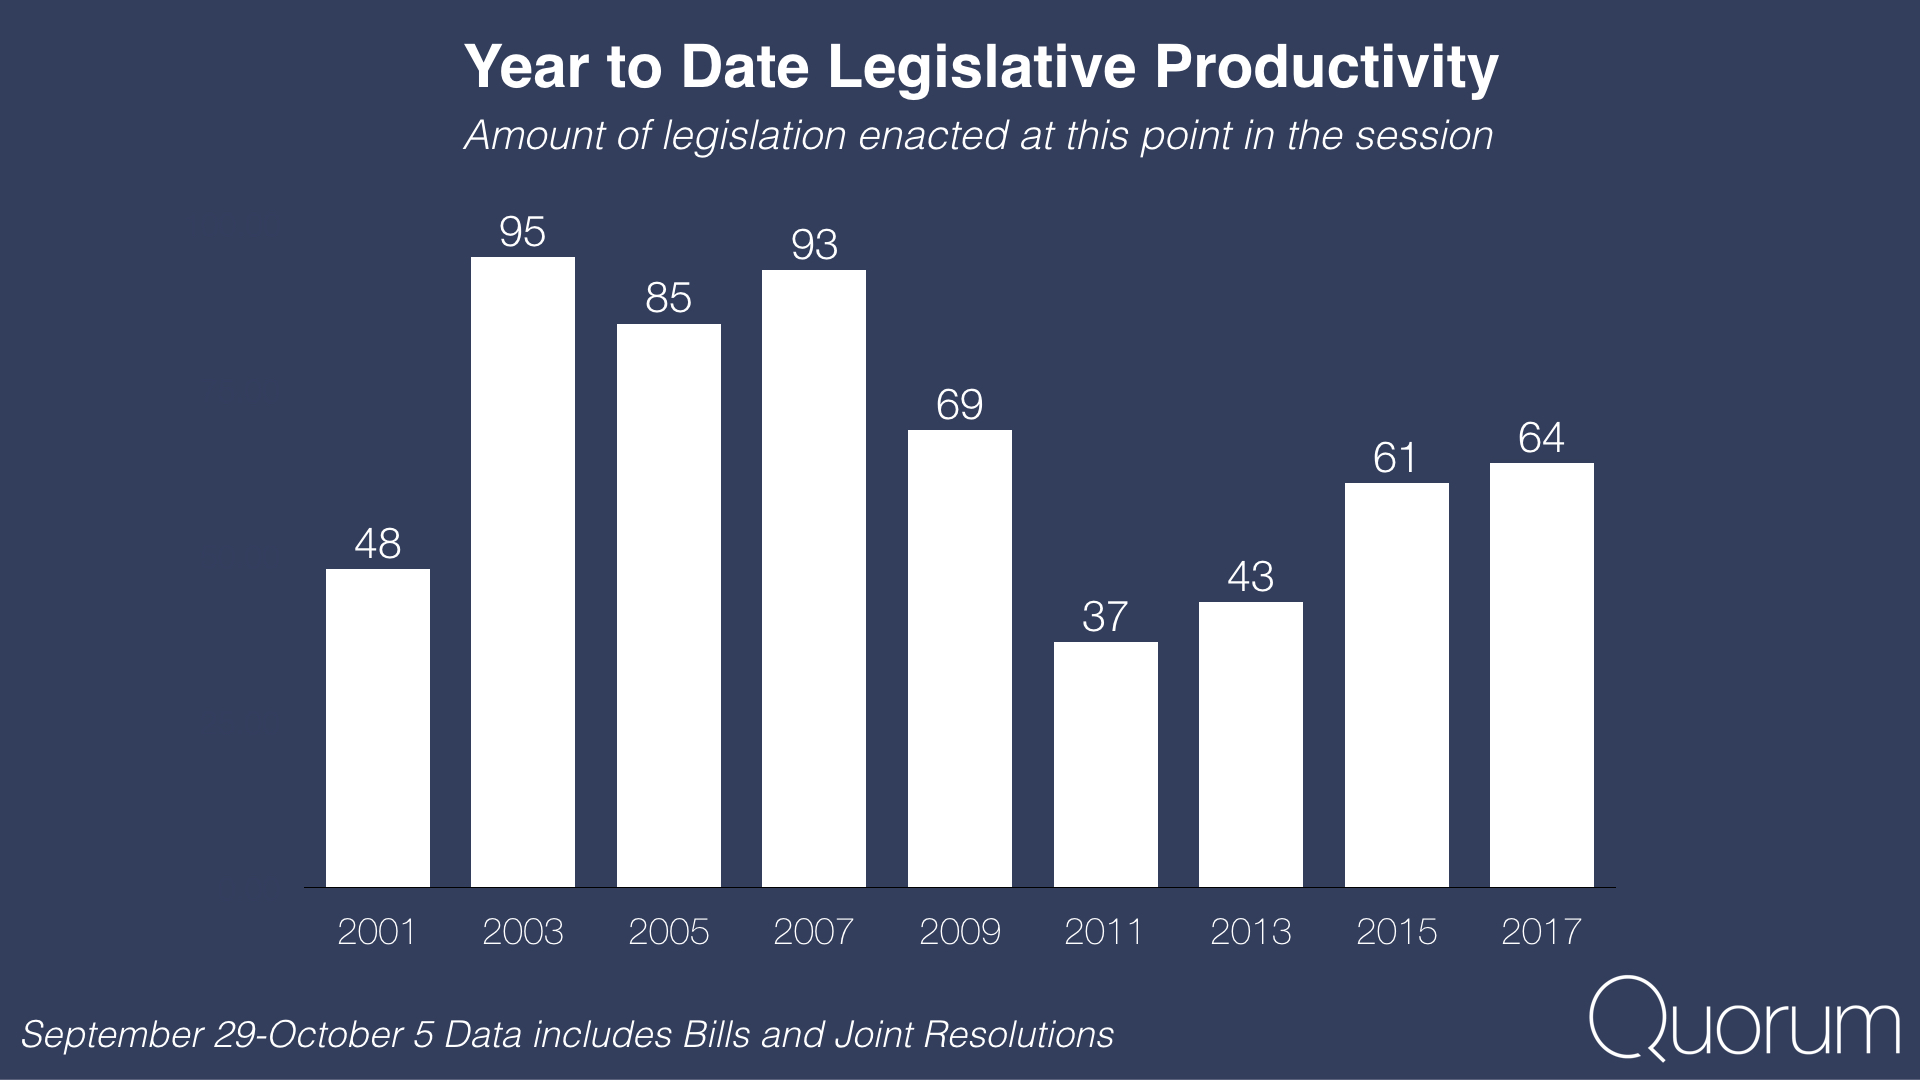 Year to date legislative productivity.